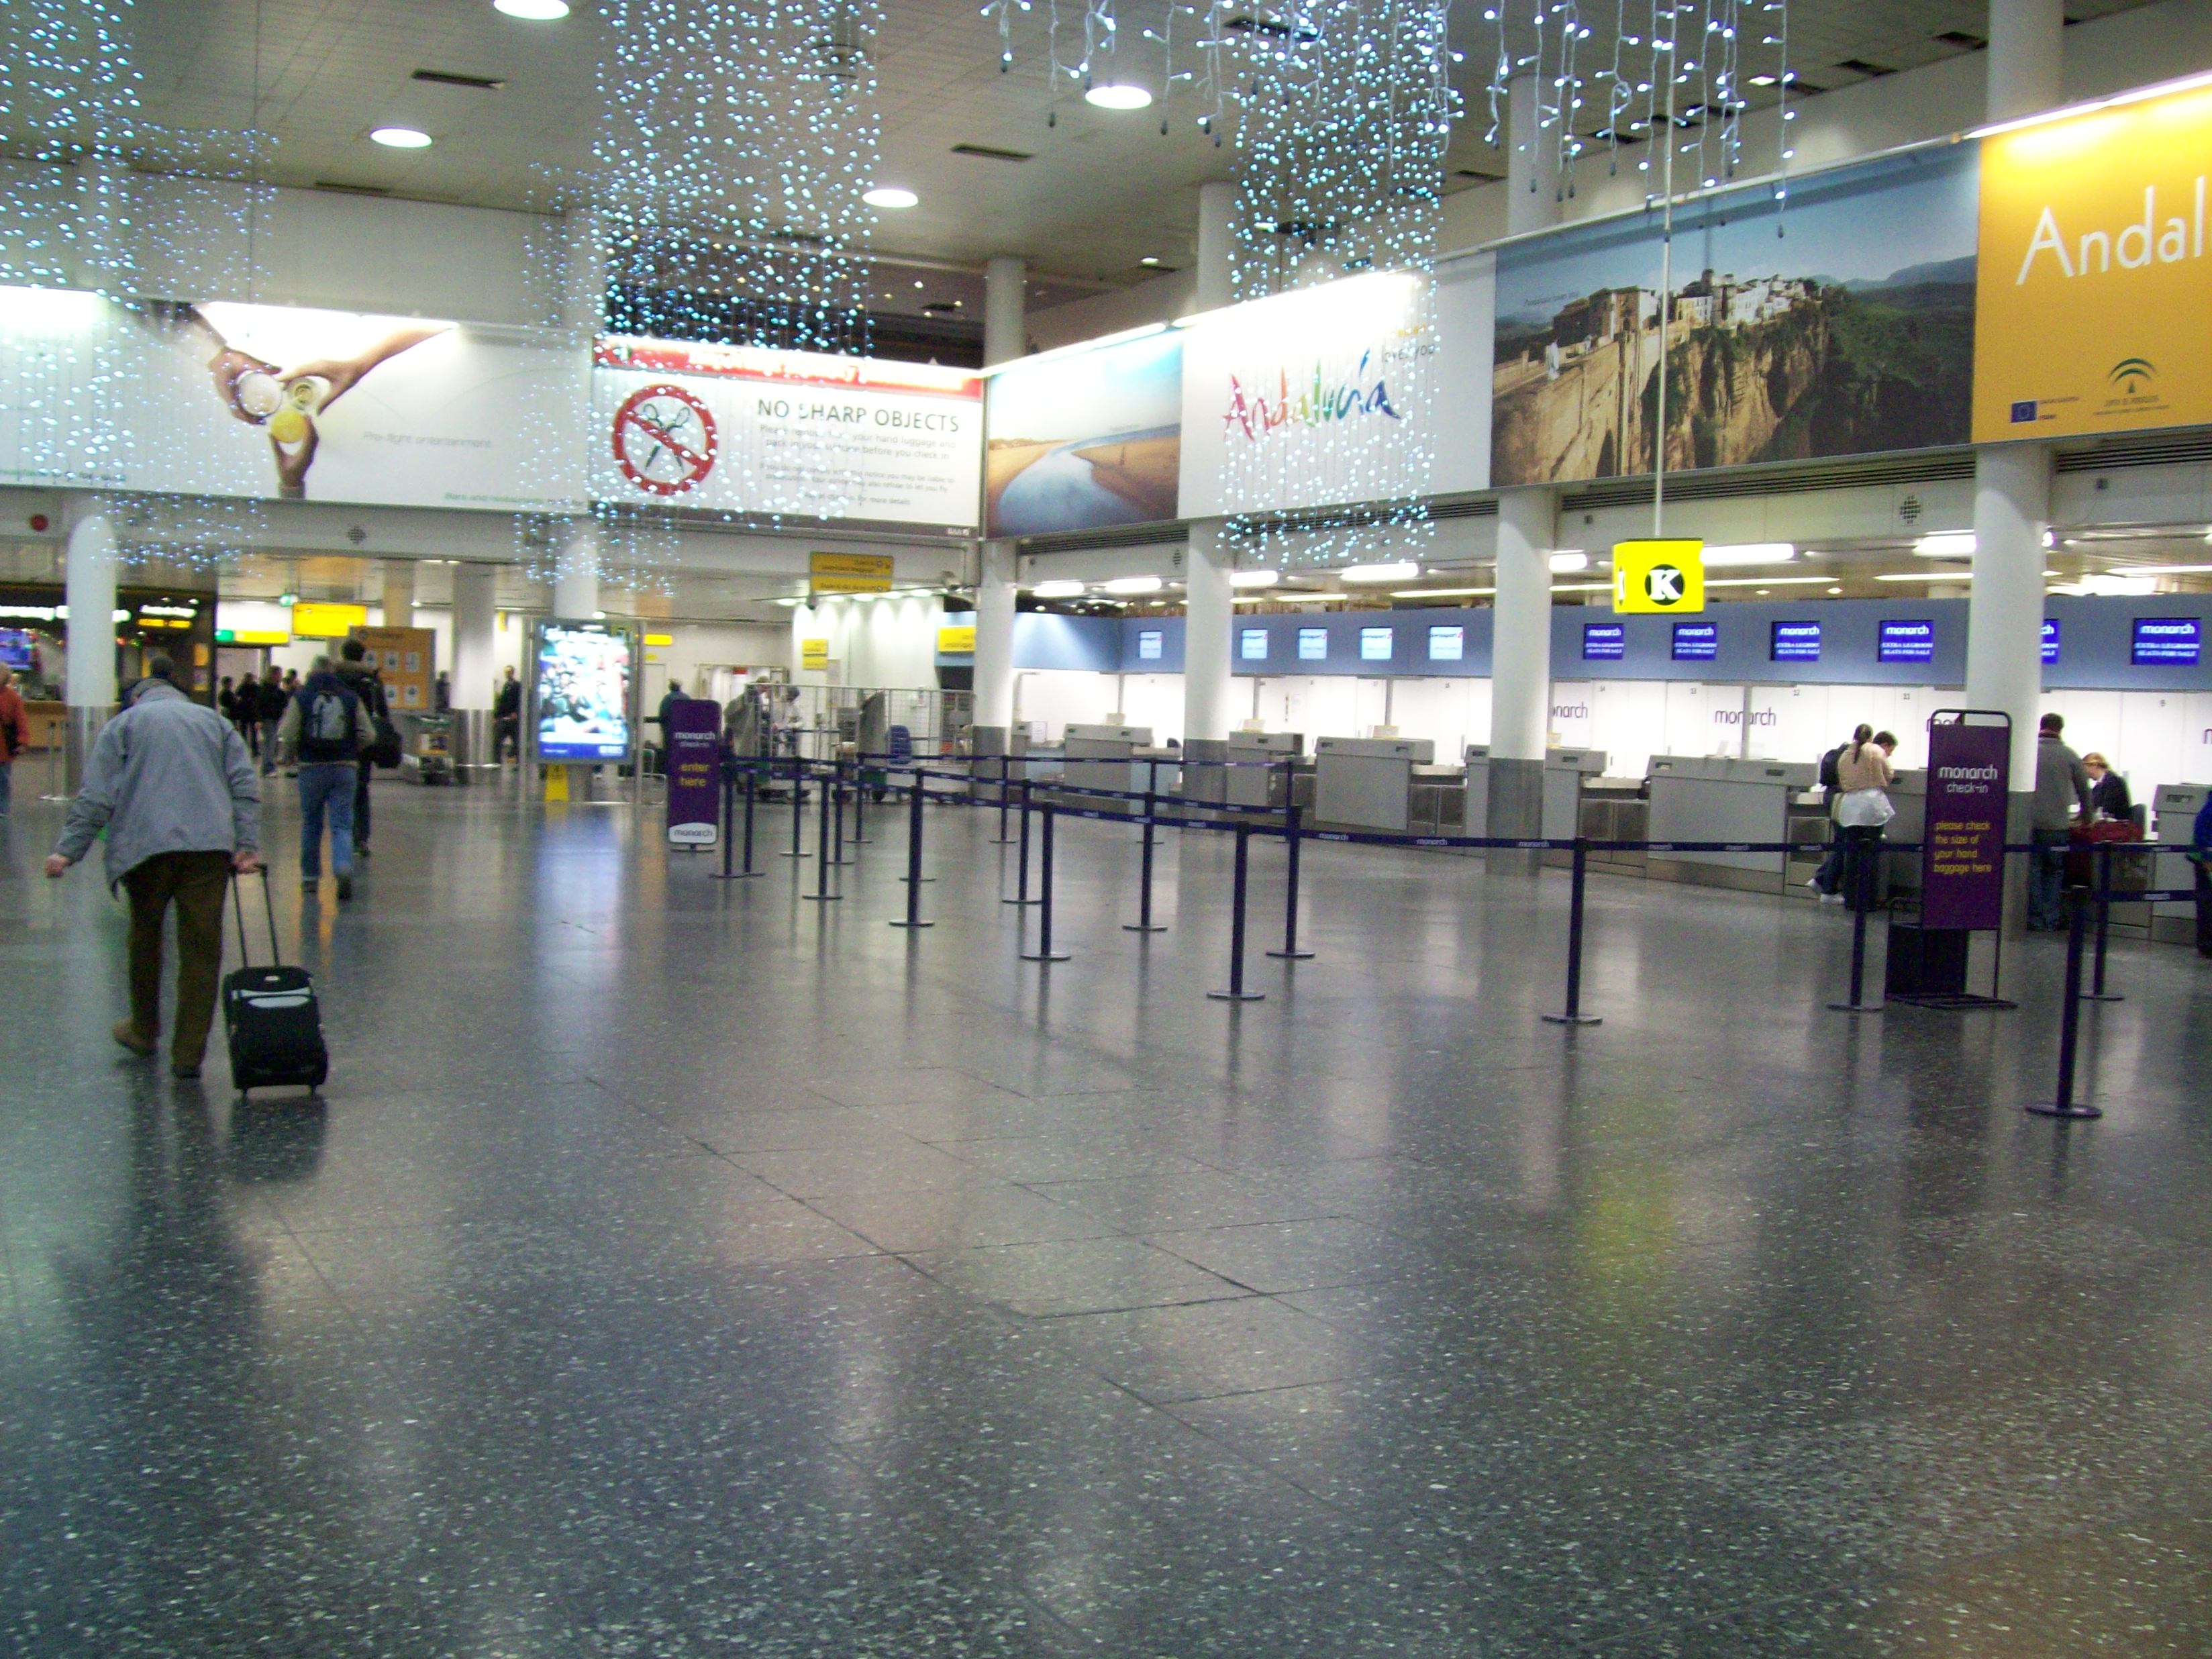 http://upload.wikimedia.org/wikipedia/commons/3/37/Gatwick_South_Terminal_check-in_concourse.JPG